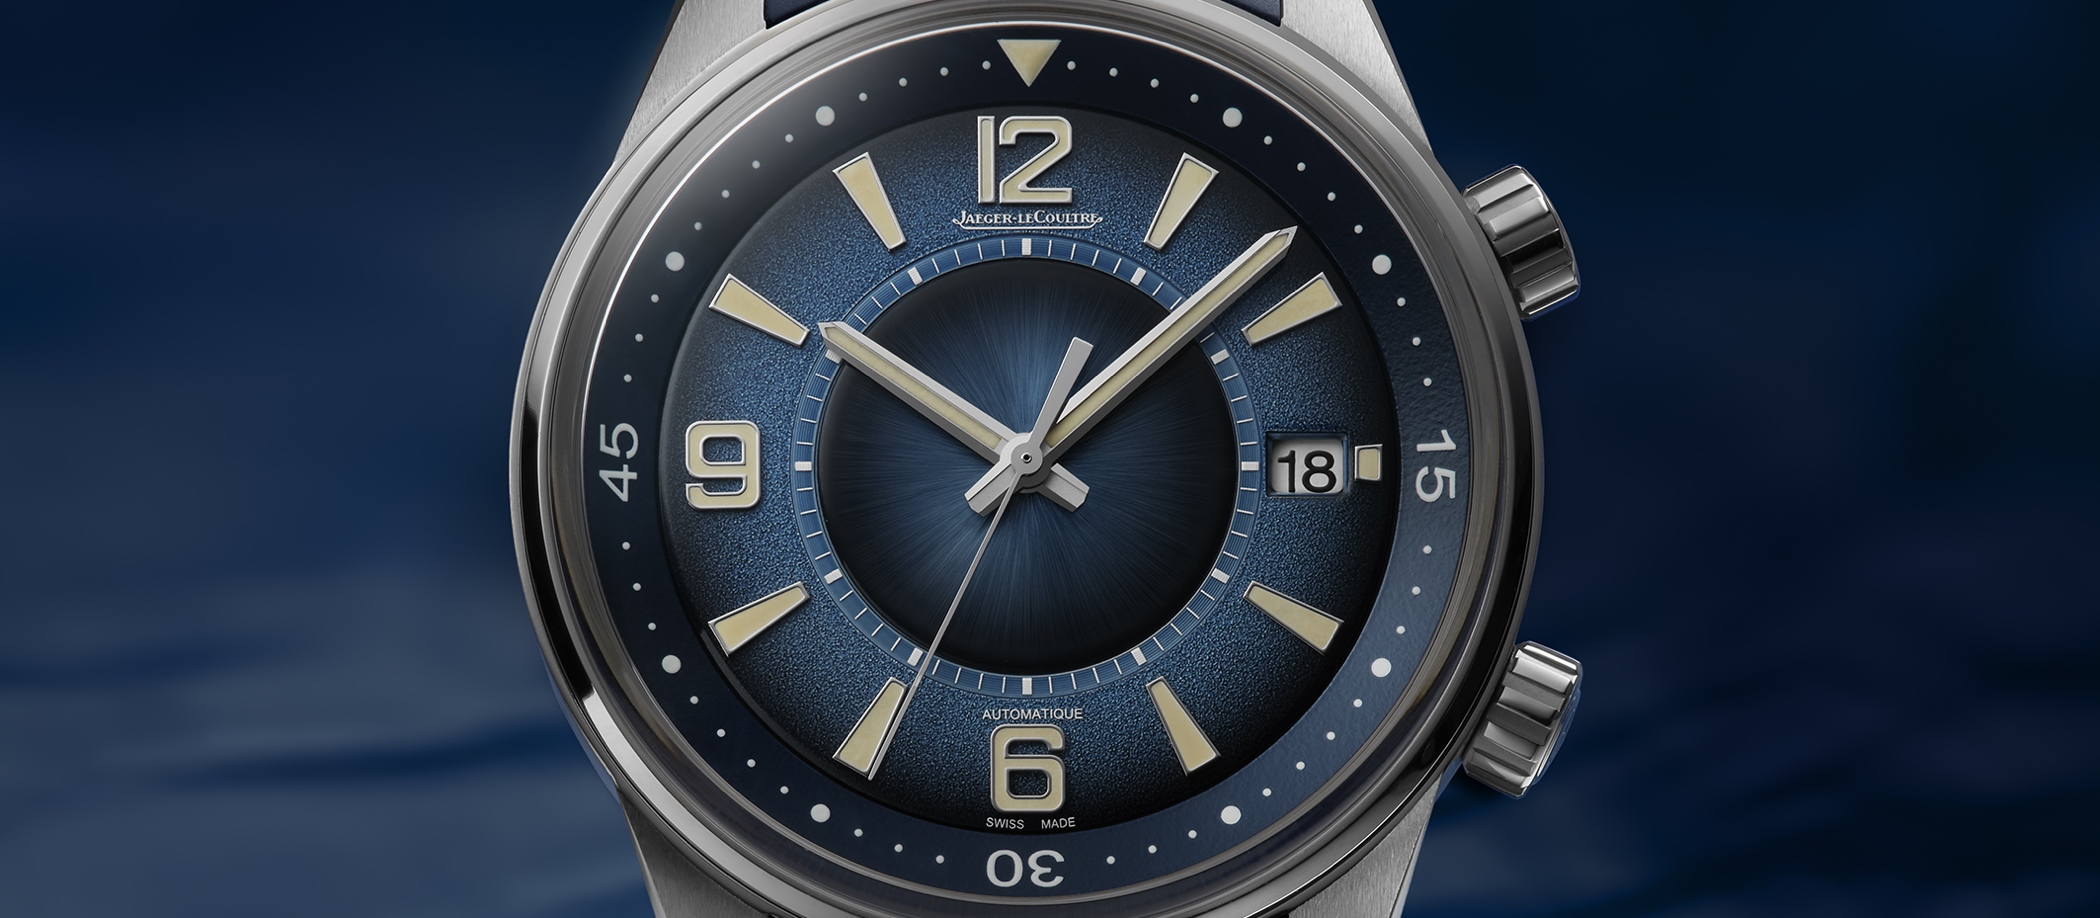 Jaeger-LeCoultre Polaris Date Limited Edition - cover 2